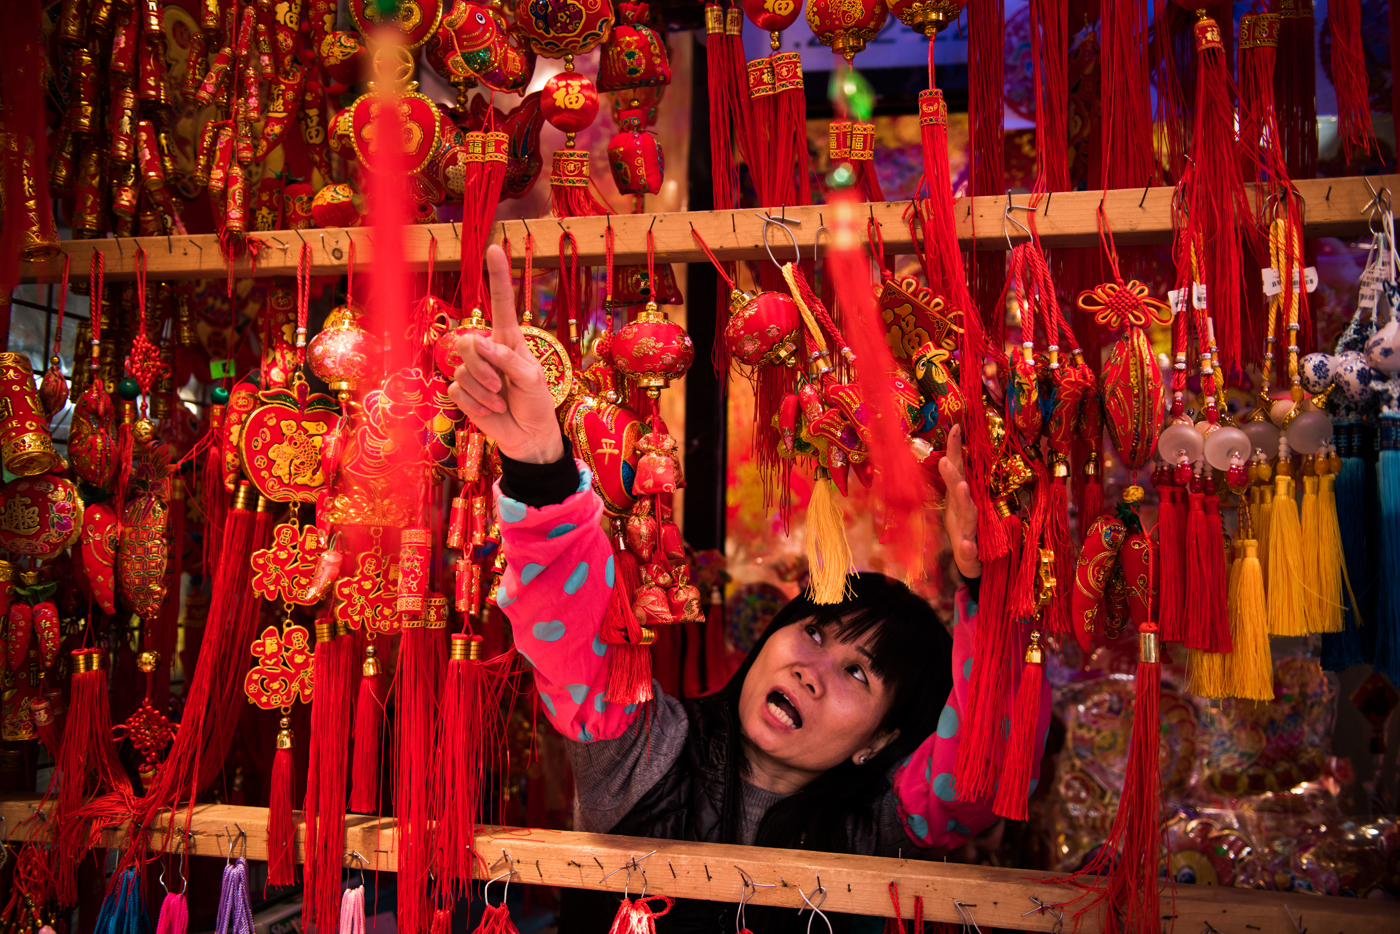 A worker points out different items while naming prices ahead of Chinese New Year in the Chinatown neighborhood of Manhattan in New York, NY.